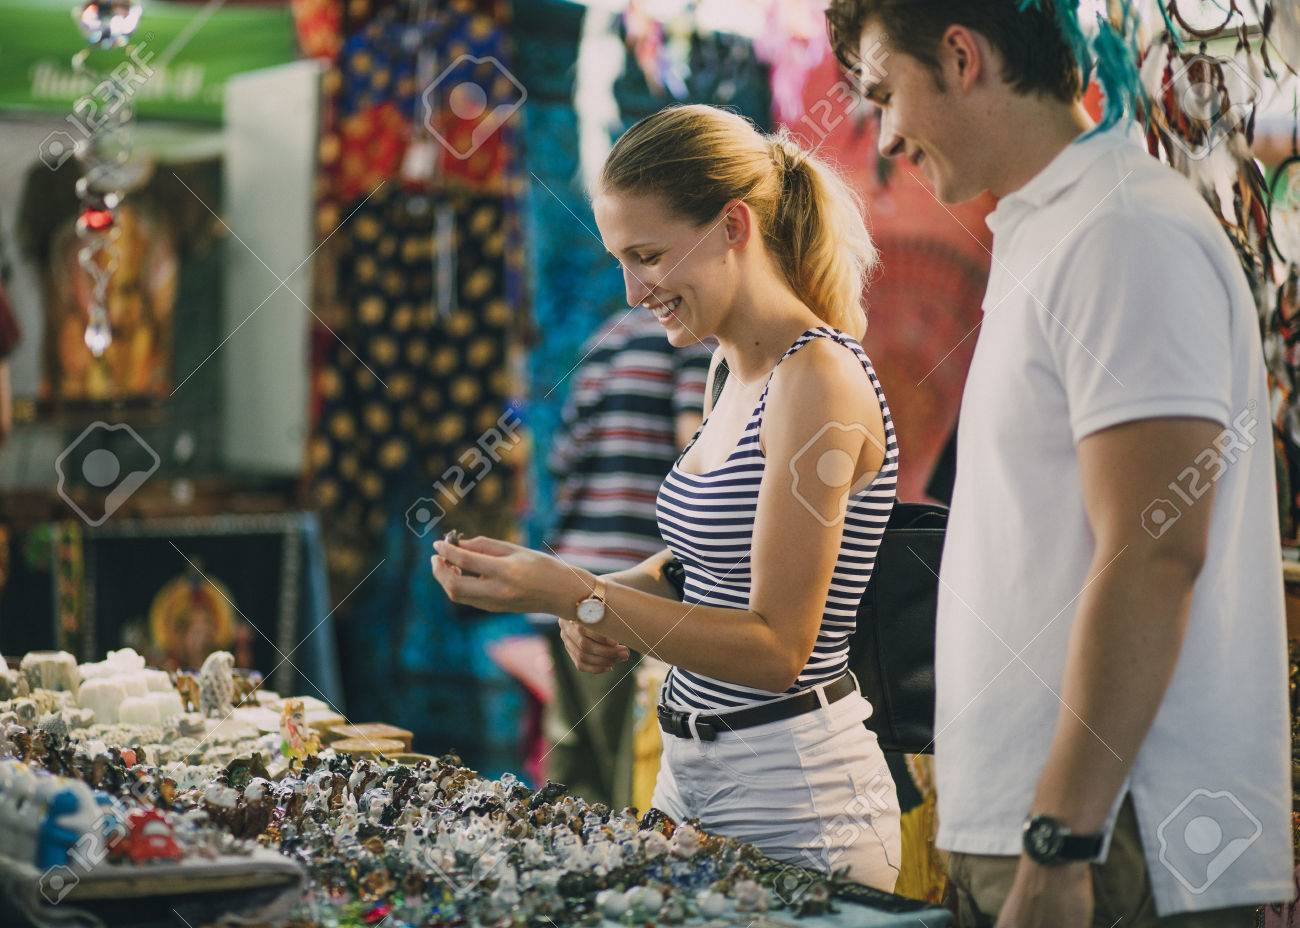 Young couple are looking at a jewellery stall in Queen Victoria Market, Australia. - 80779685